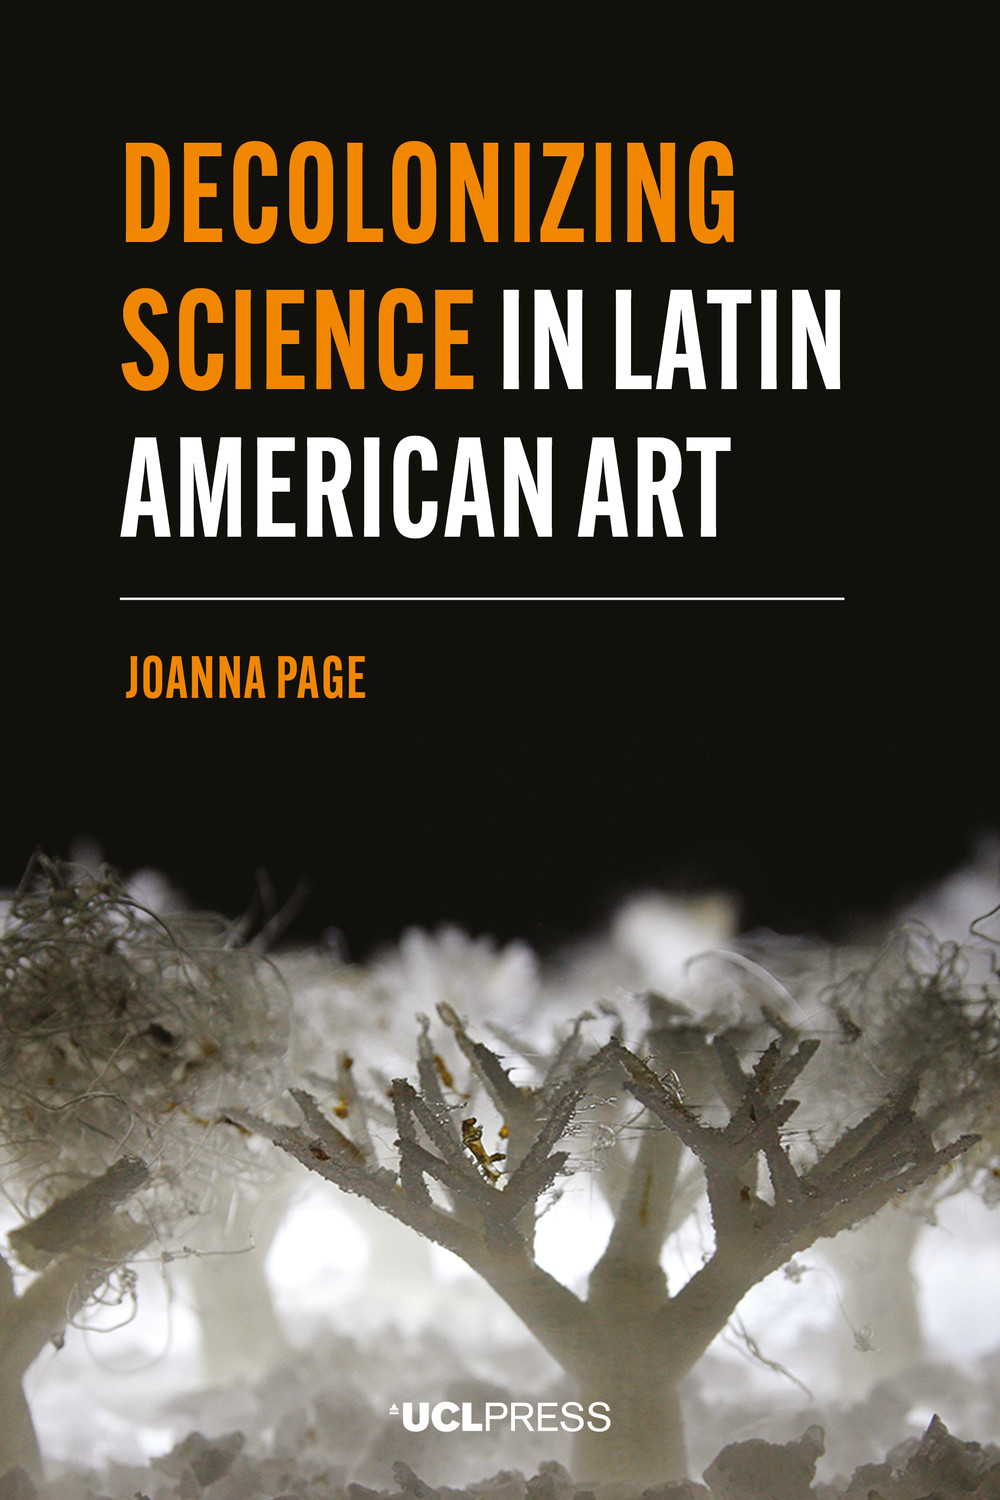 Decolonizing Science in Latin American Art